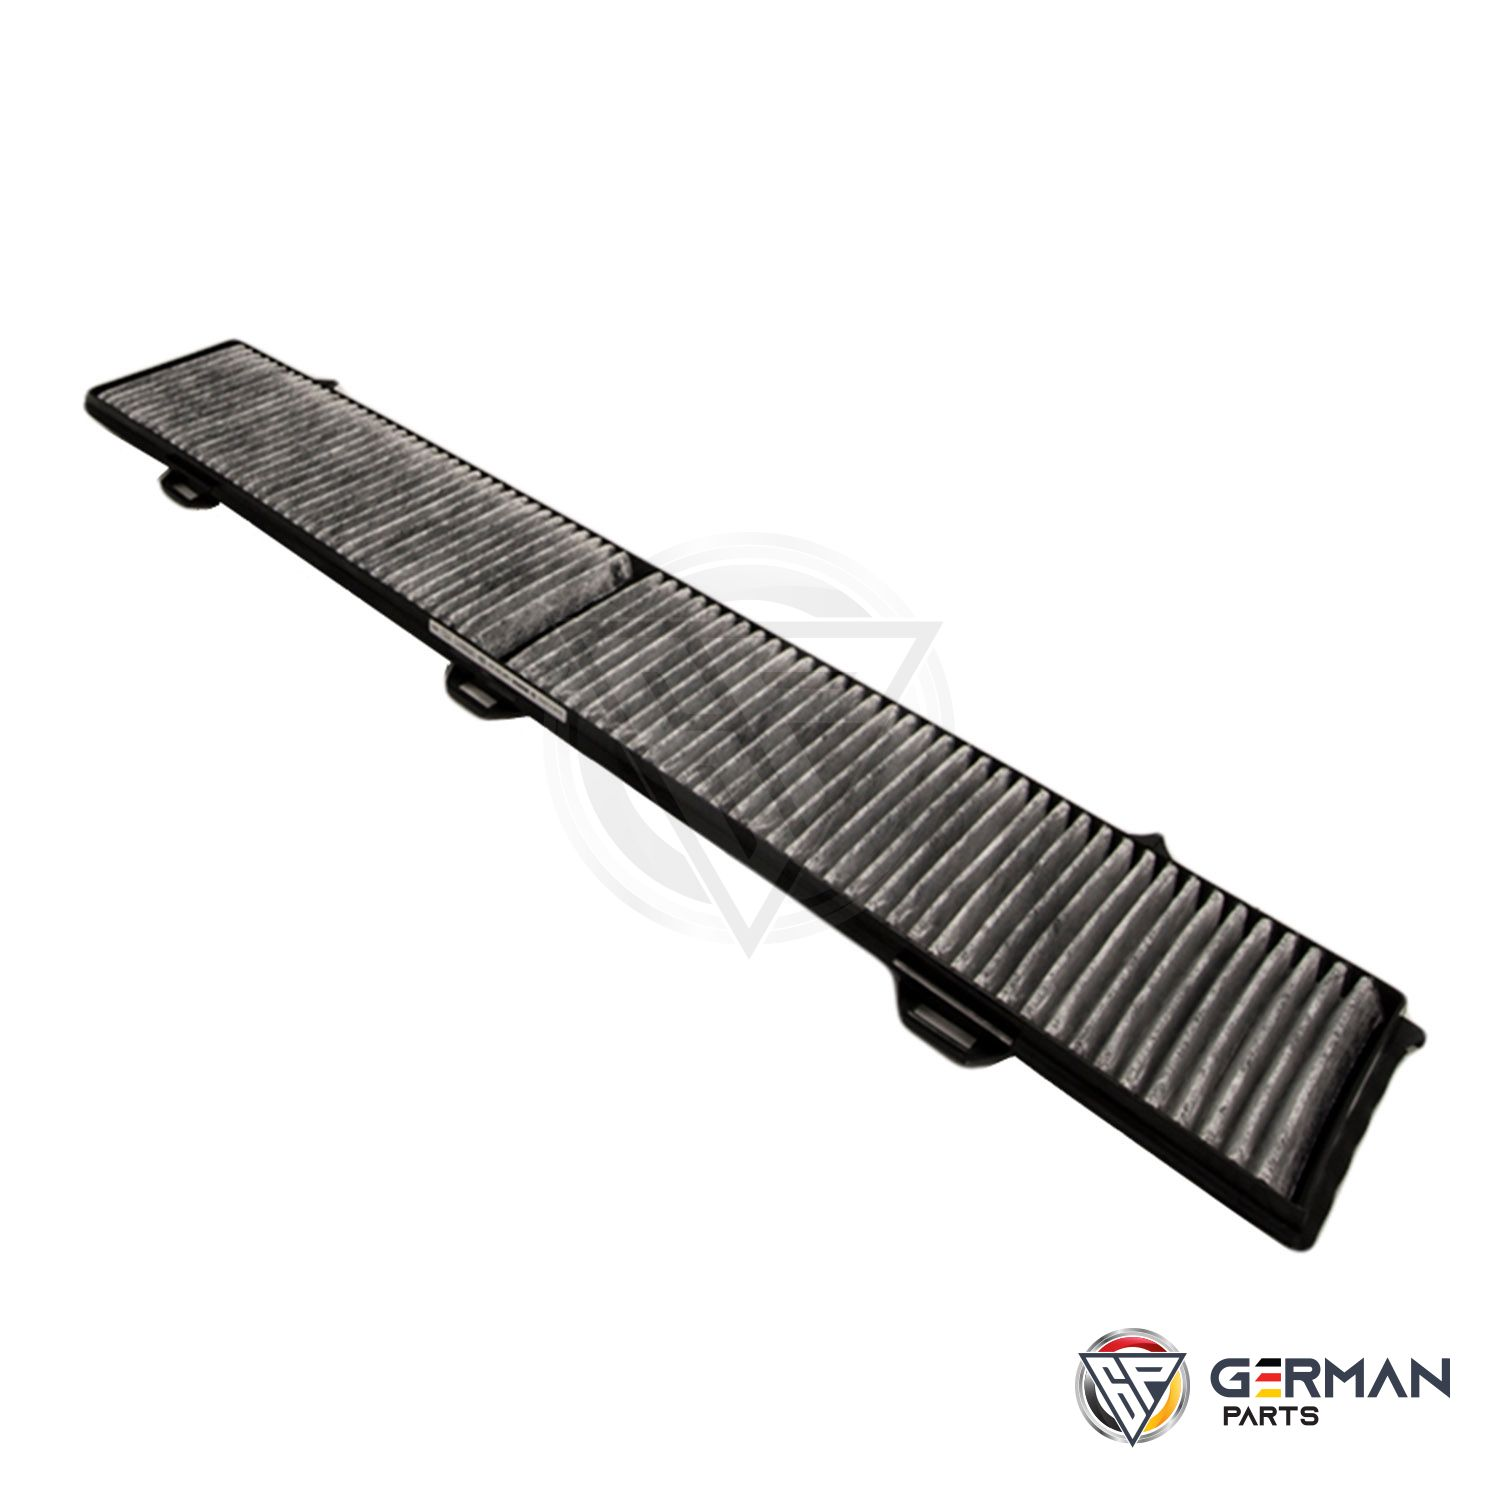 Buy Bosch Ac Dust Filter 64319142115 - German Parts